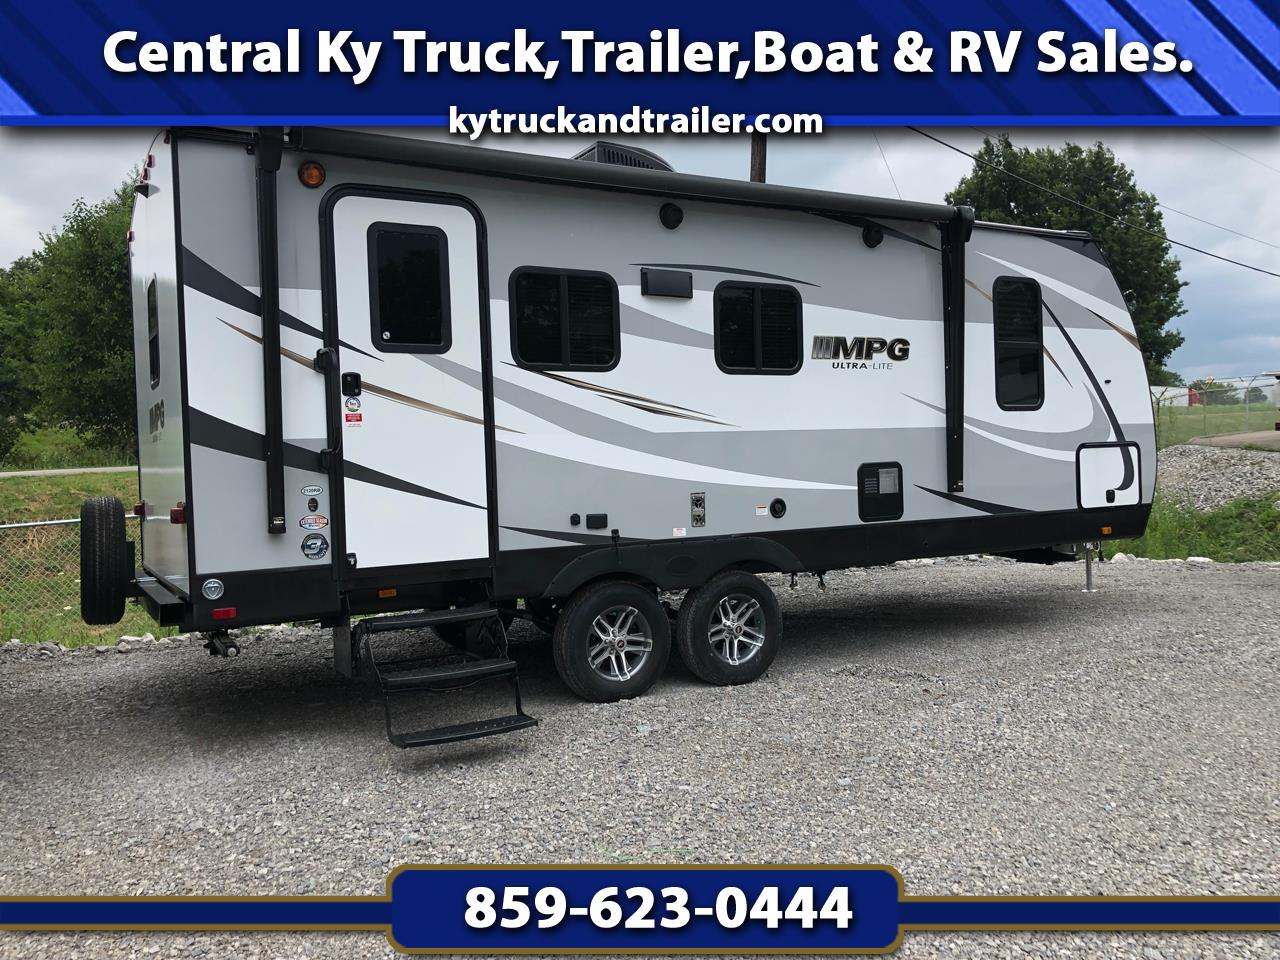 2020 Cruiser RV MPG 2120RB REAR BATH ULTRA LIGHT